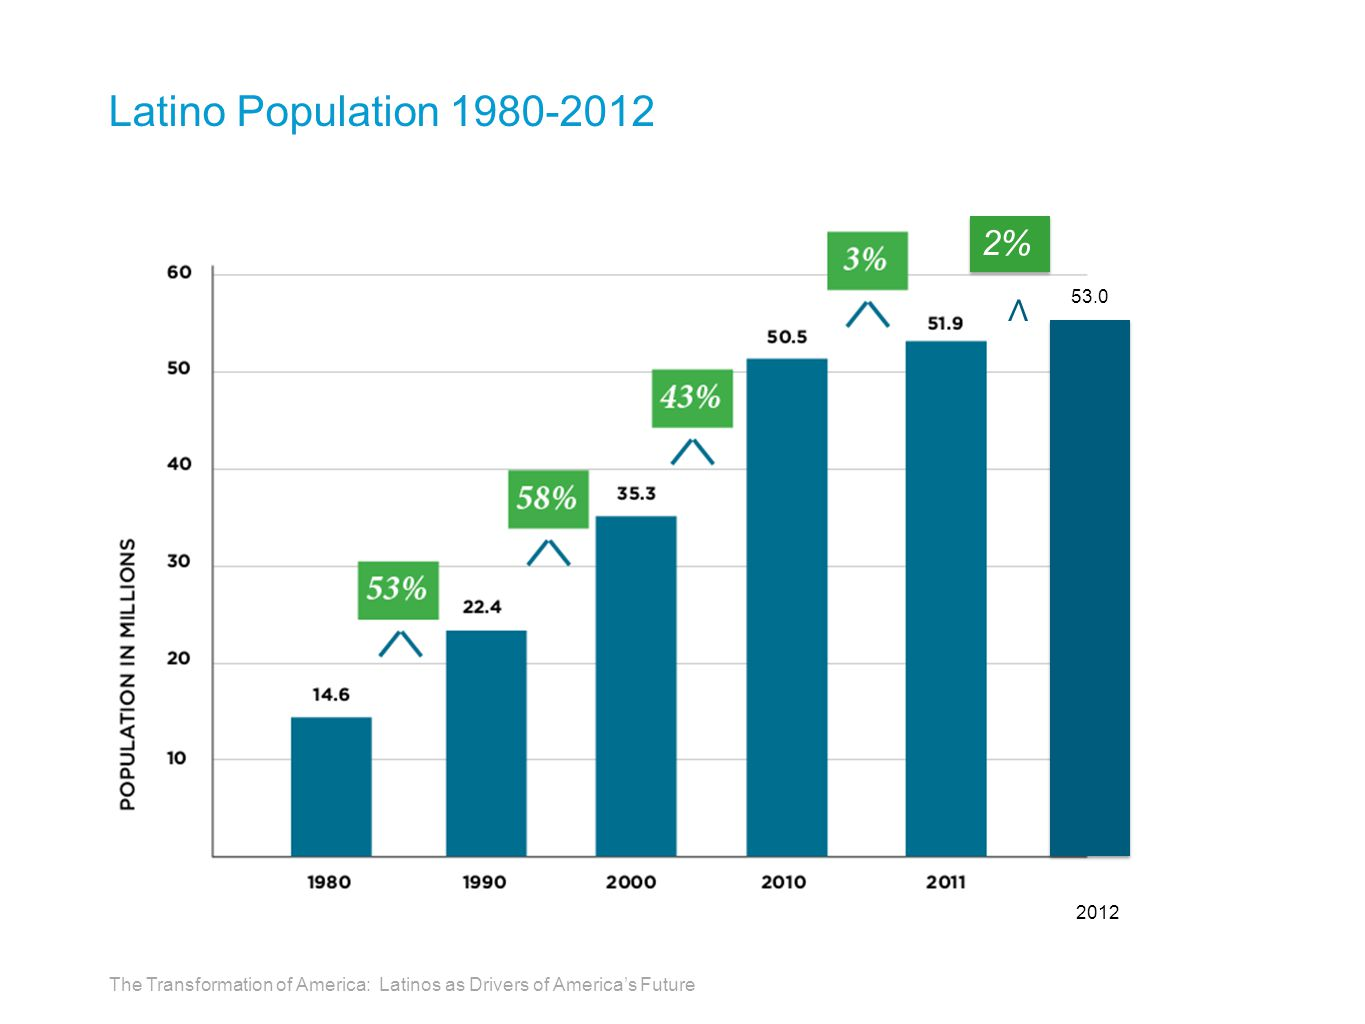 Latino Population 1980-2012 2012 53.0 2% ∧ The Transformation of America: Latinos as Drivers of America's Future